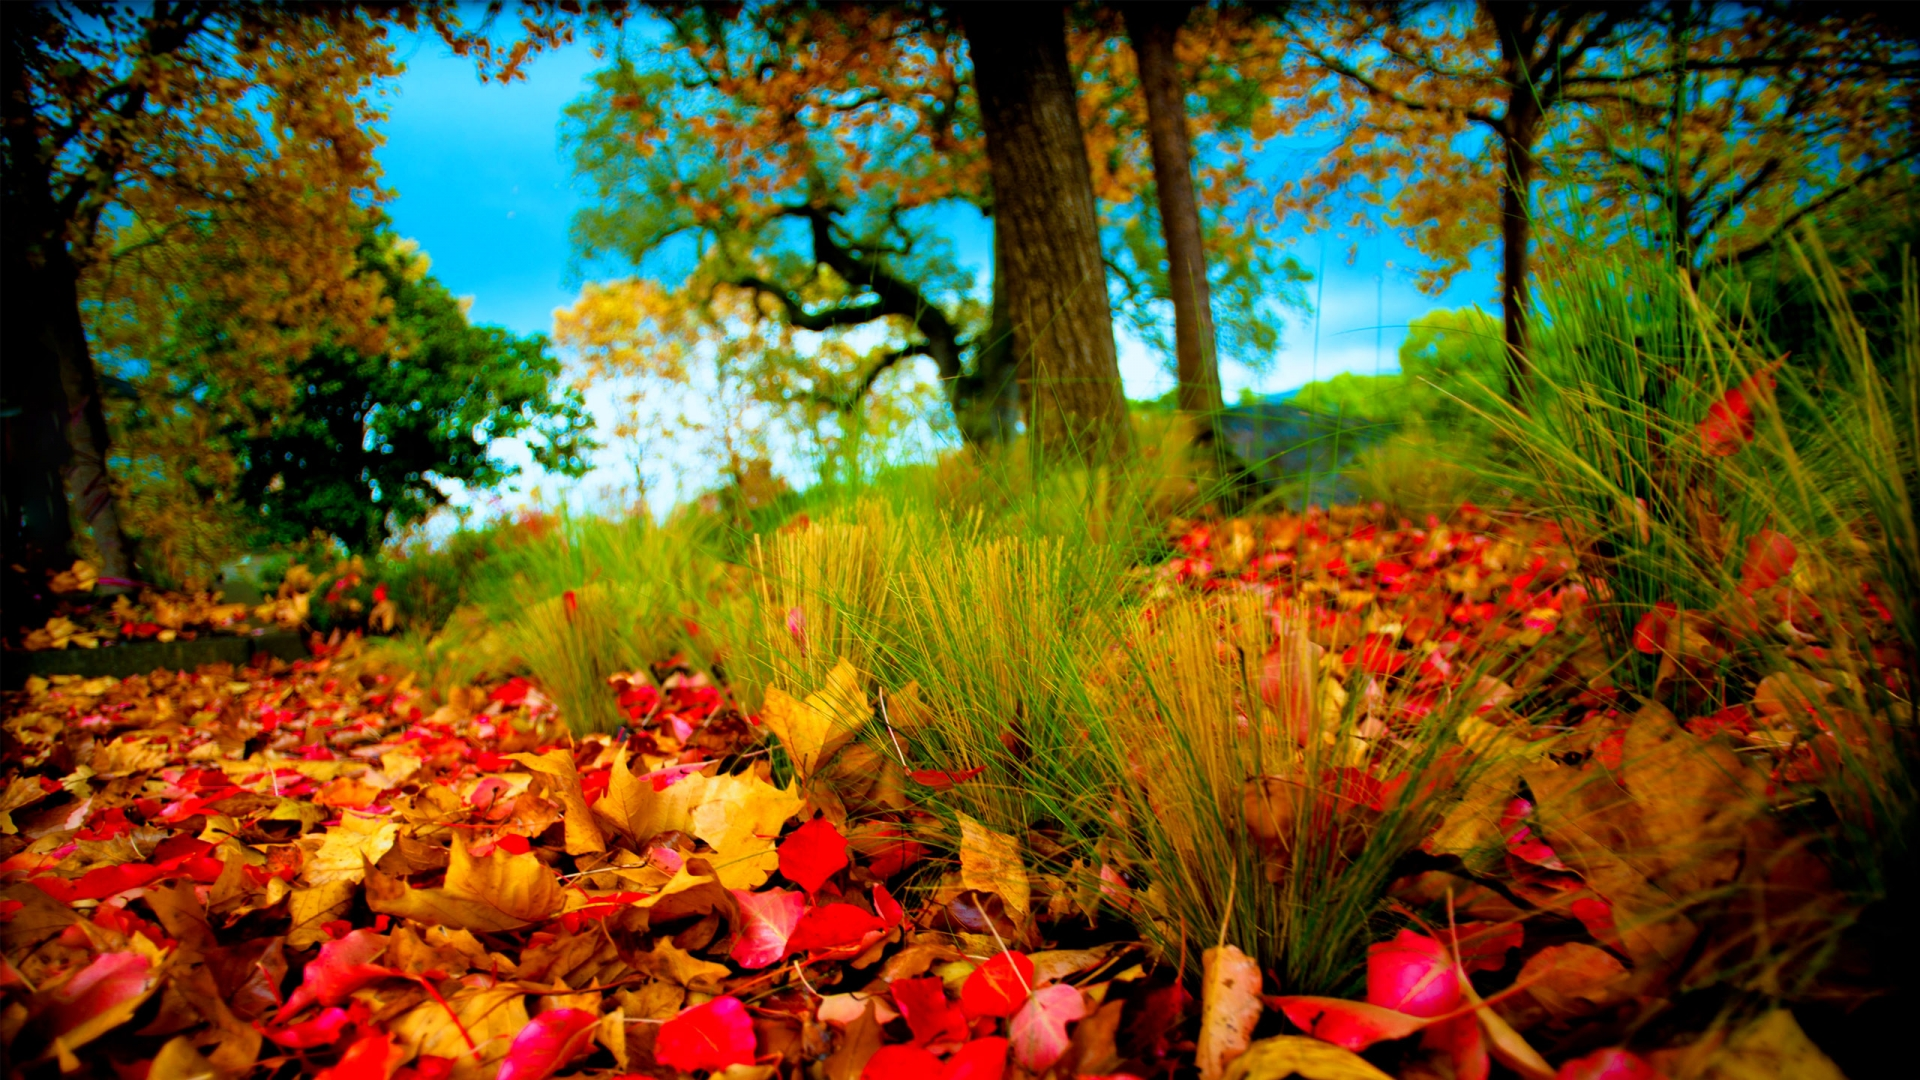 HD Wallpapers 1080p Nature Love